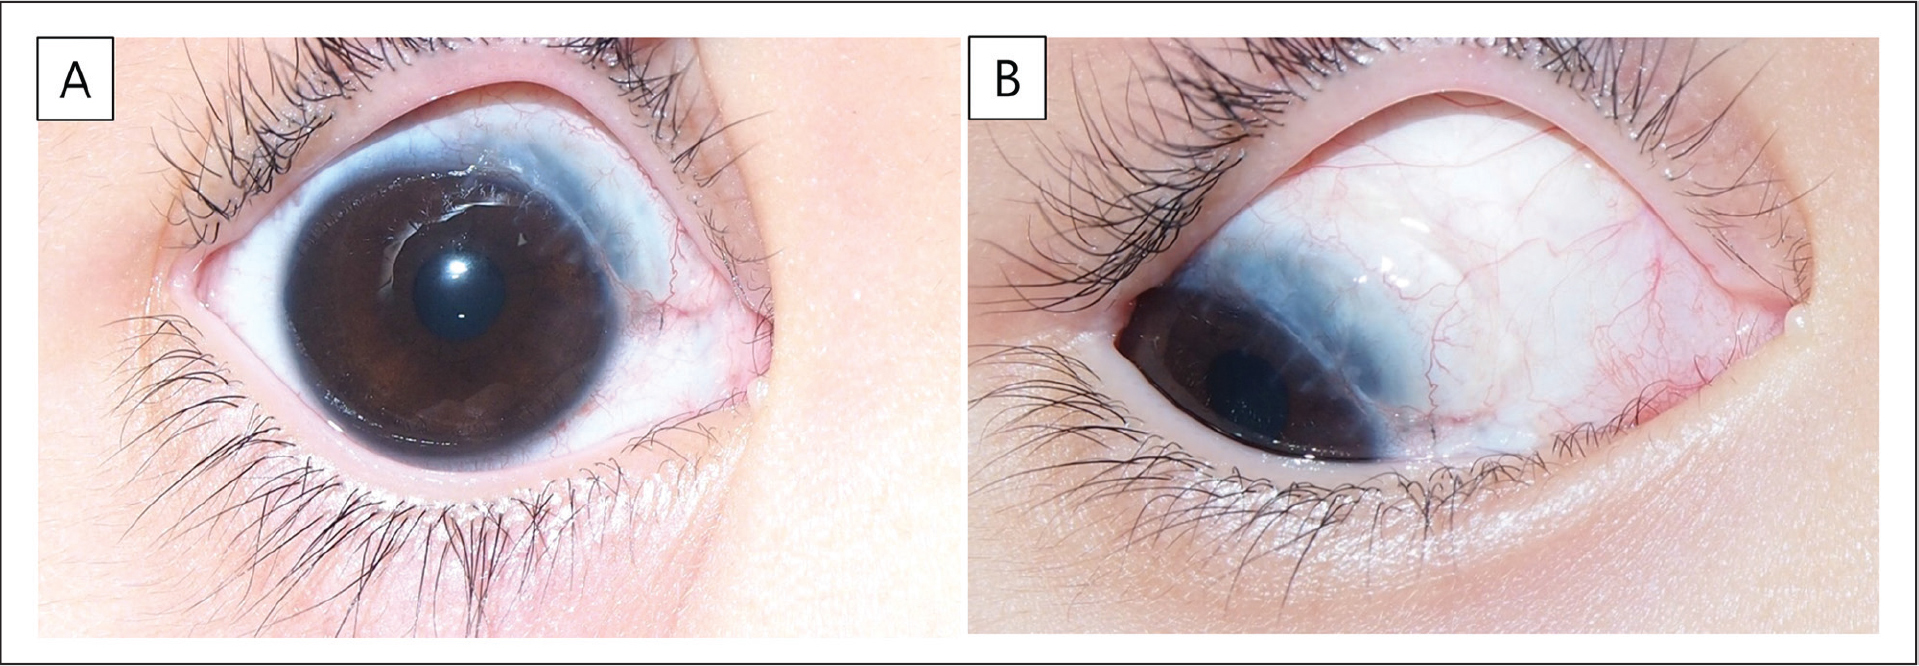 (A and B) Anterior segment photography 9 months postoperatively. No recurrence of cysts occurred, and the cornea regained clarity.